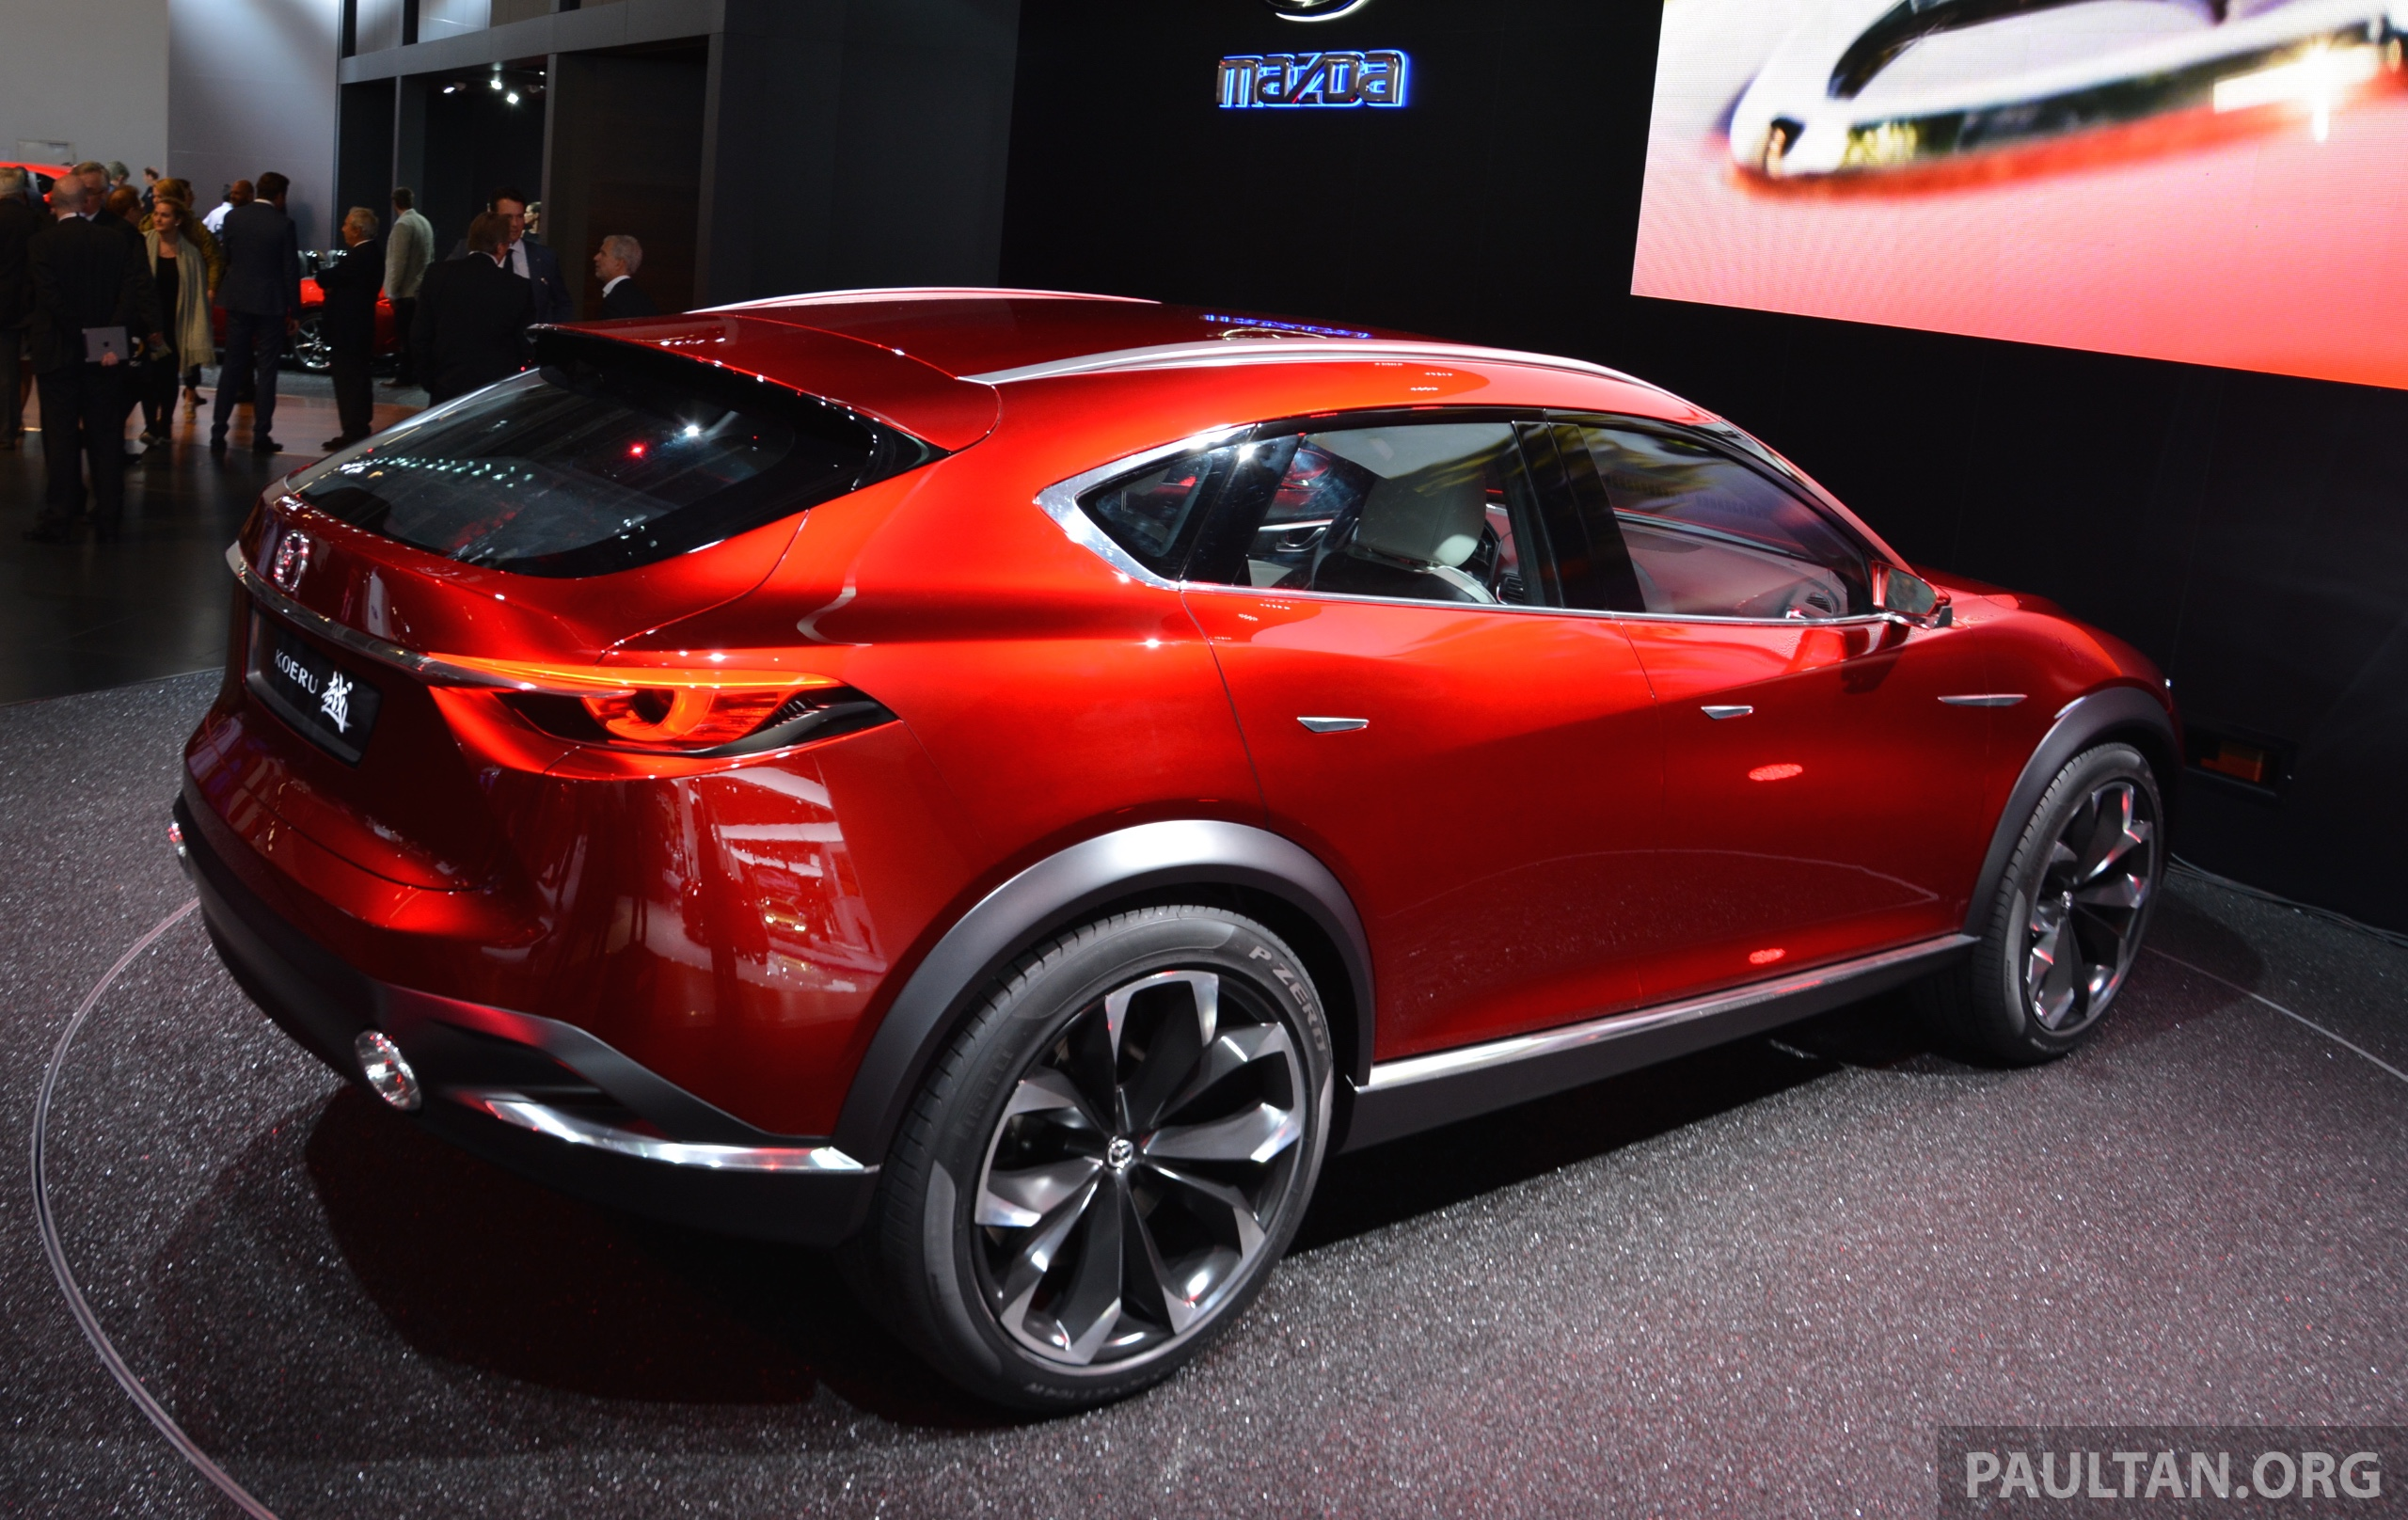 Mazda Cx 9 >> Mazda Koeru concept previews a sportier CX-5 SUV? Paul Tan - Image 380247